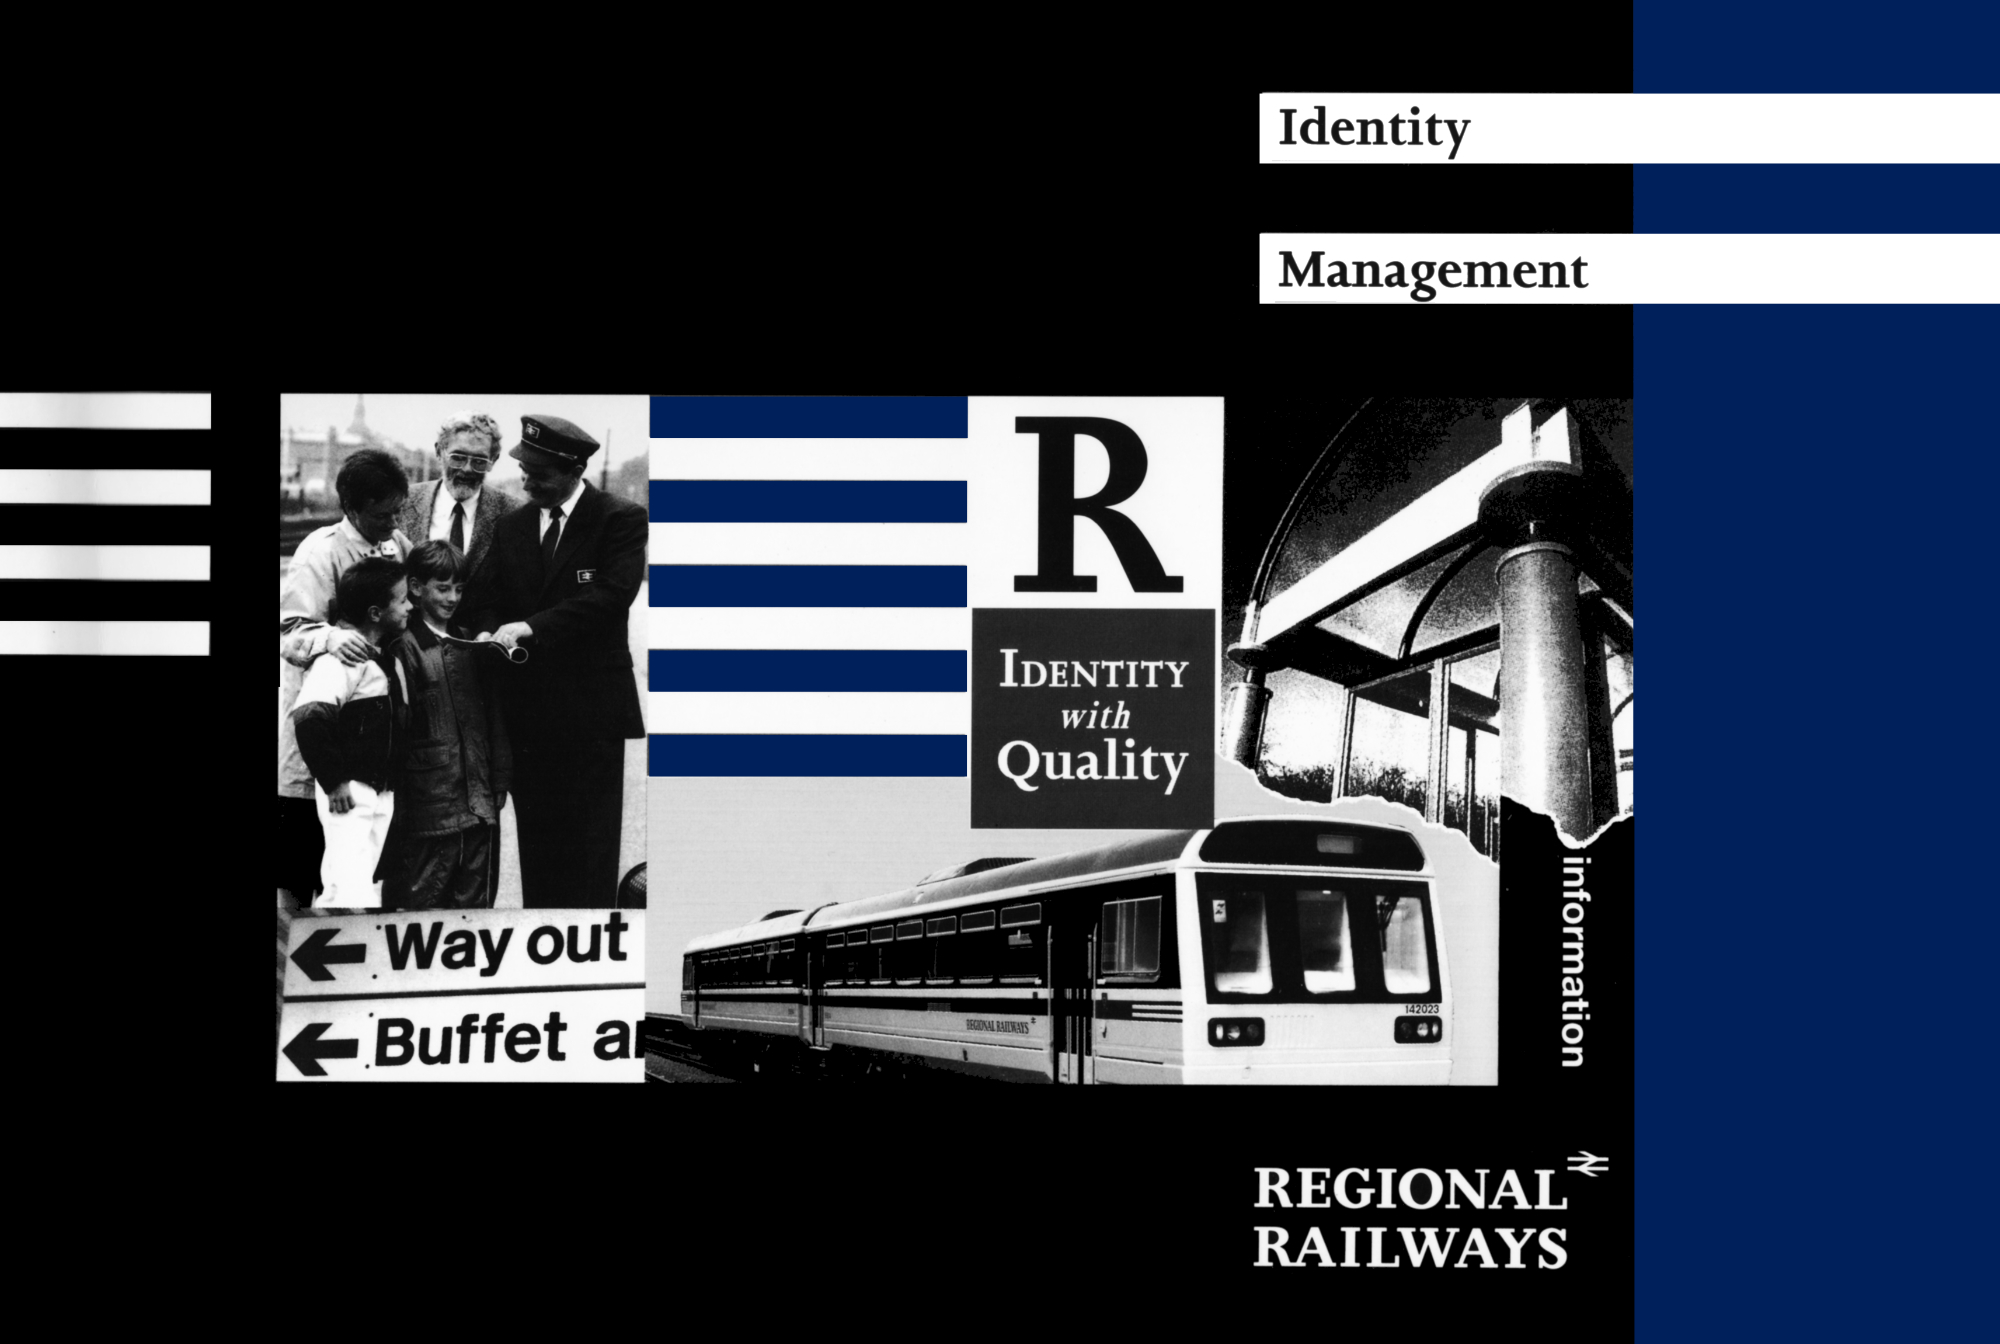 Regional Railways identity management